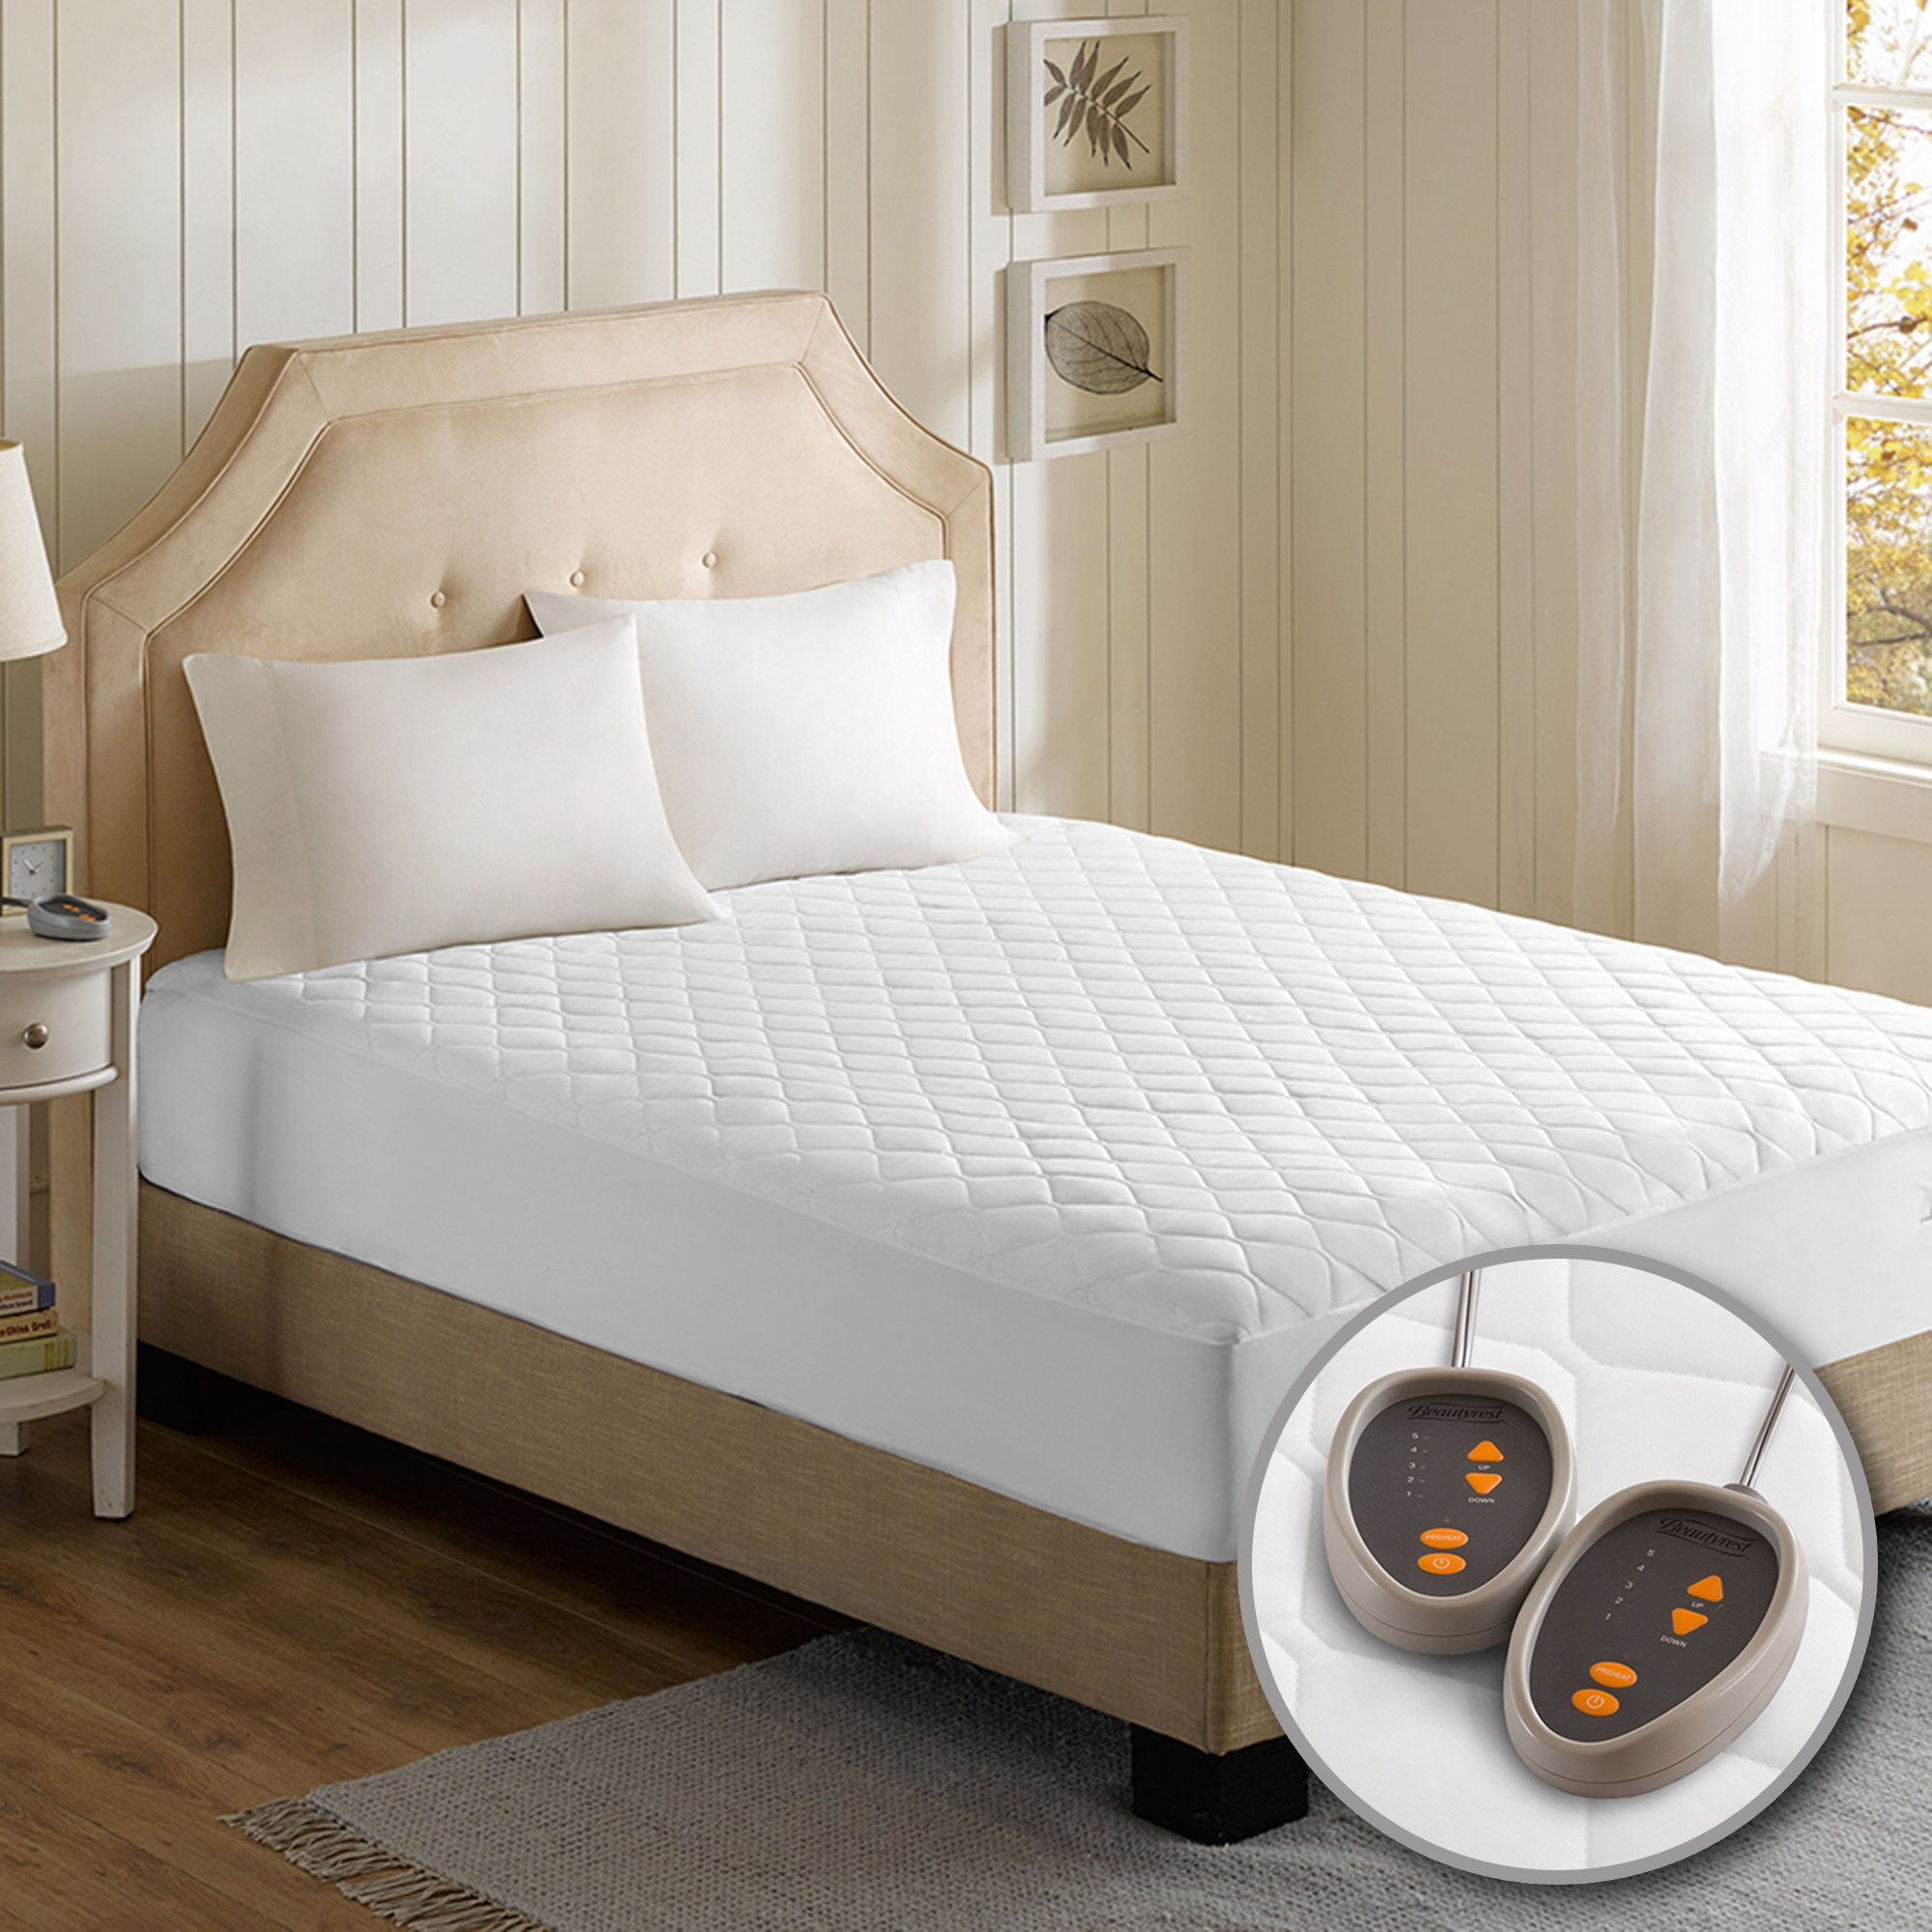 Beautyrest Mattress Technology 5 Setting Controllers